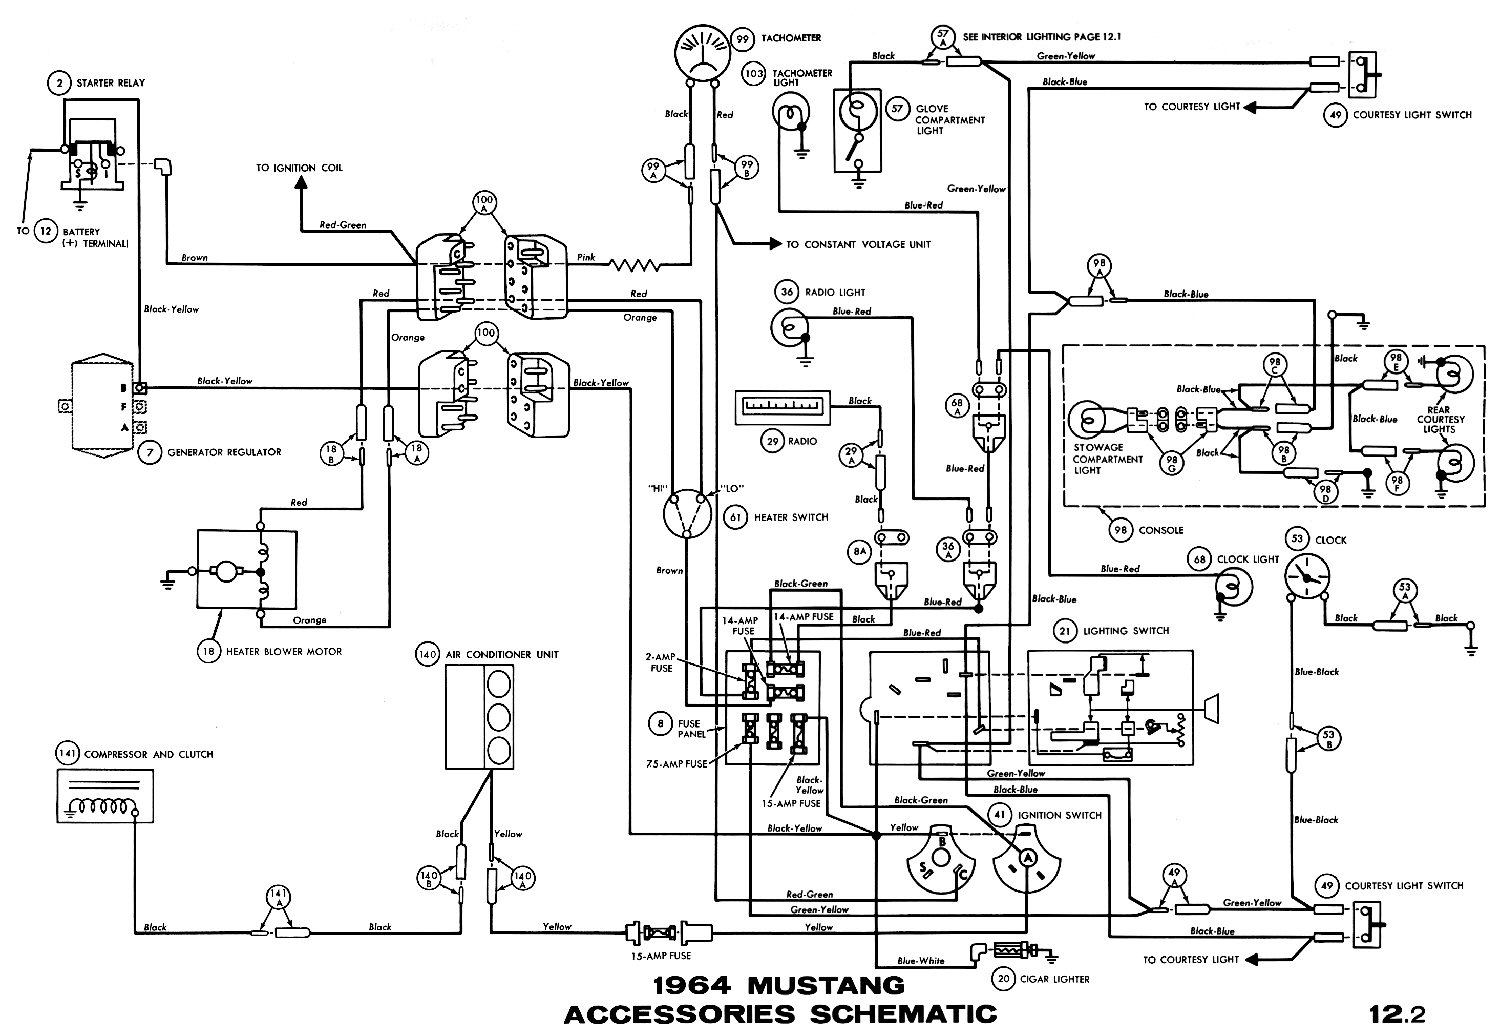 Volvo Wiring Diagram in addition Vehicle Turn Radius Diagrams in addition Gmc 2500 Ke Wiring Diagram besides Harley Boom Audio Wiring Diagram in addition 22re Coolant Hoses 1st Gen 4runner 246805. on vactor wiring diagrams